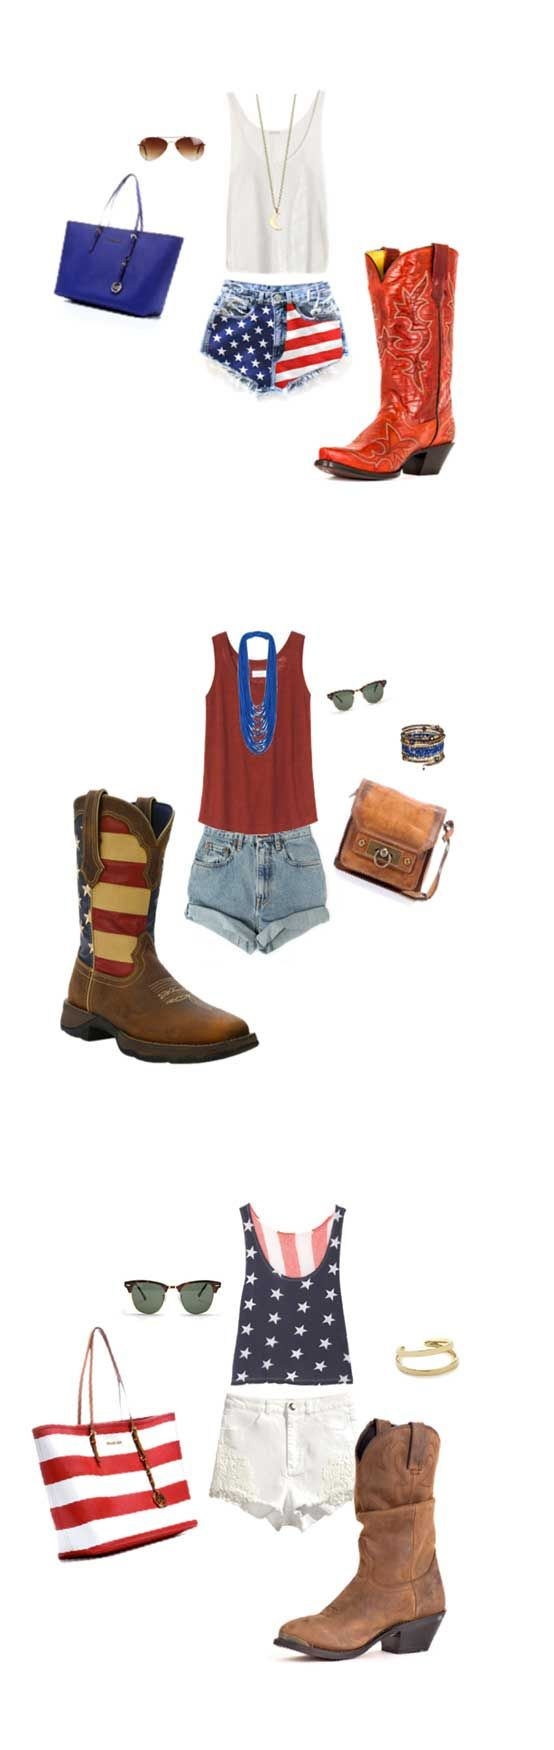 Show your American Pride today and everyday! | Country Outfitter